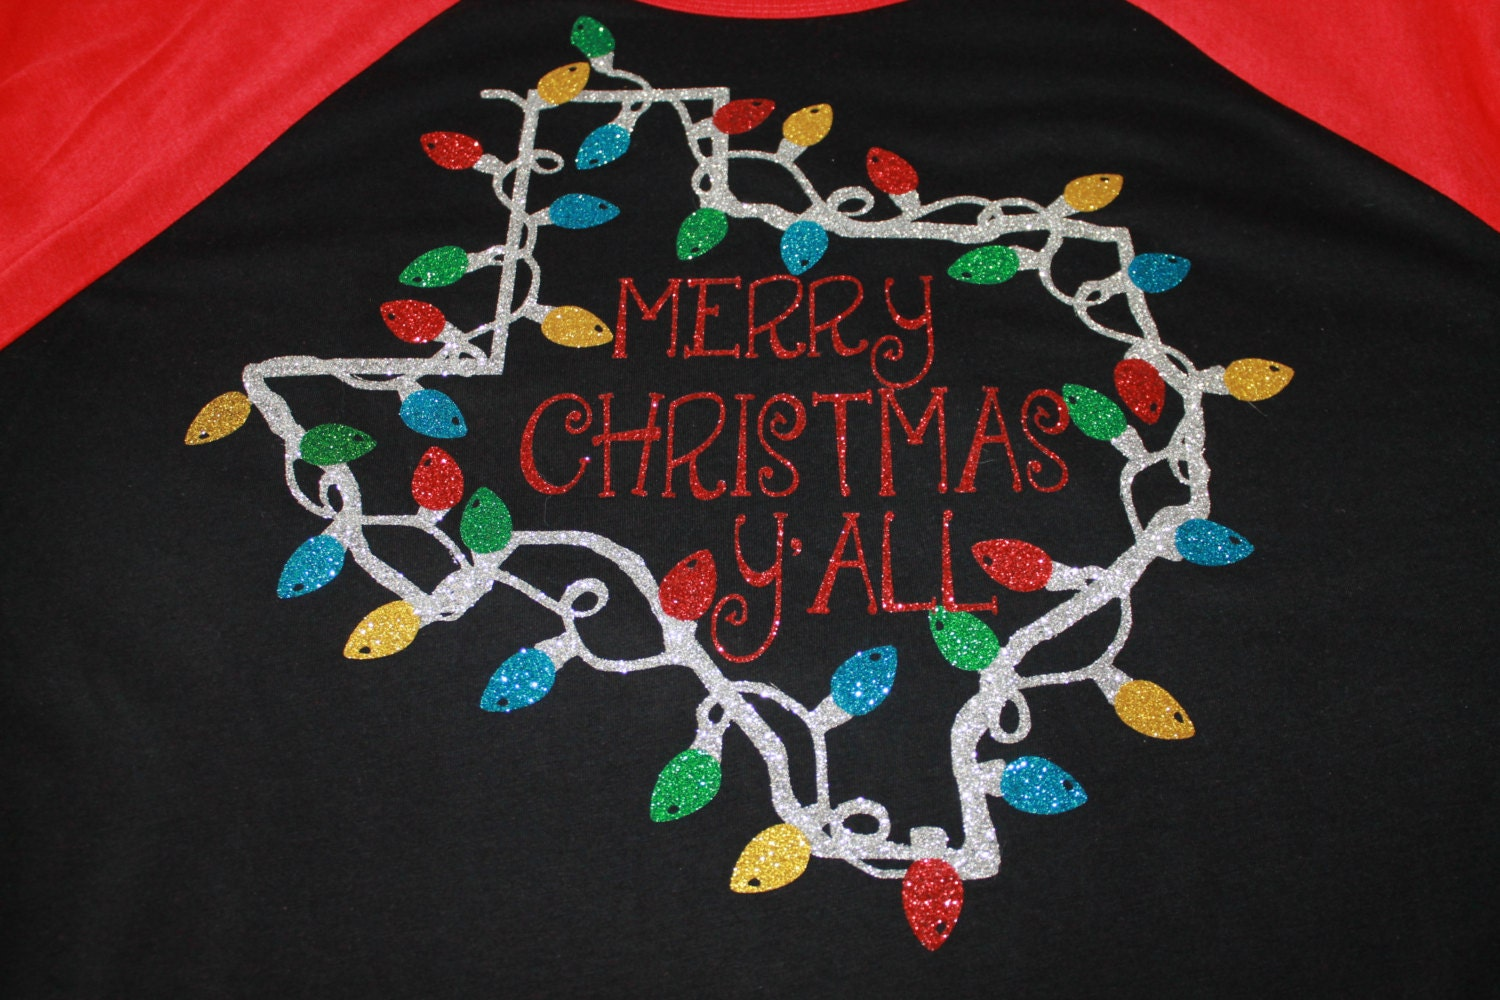 Merry Christmas Y'all Shirt Merry Christmas Texas Shirt